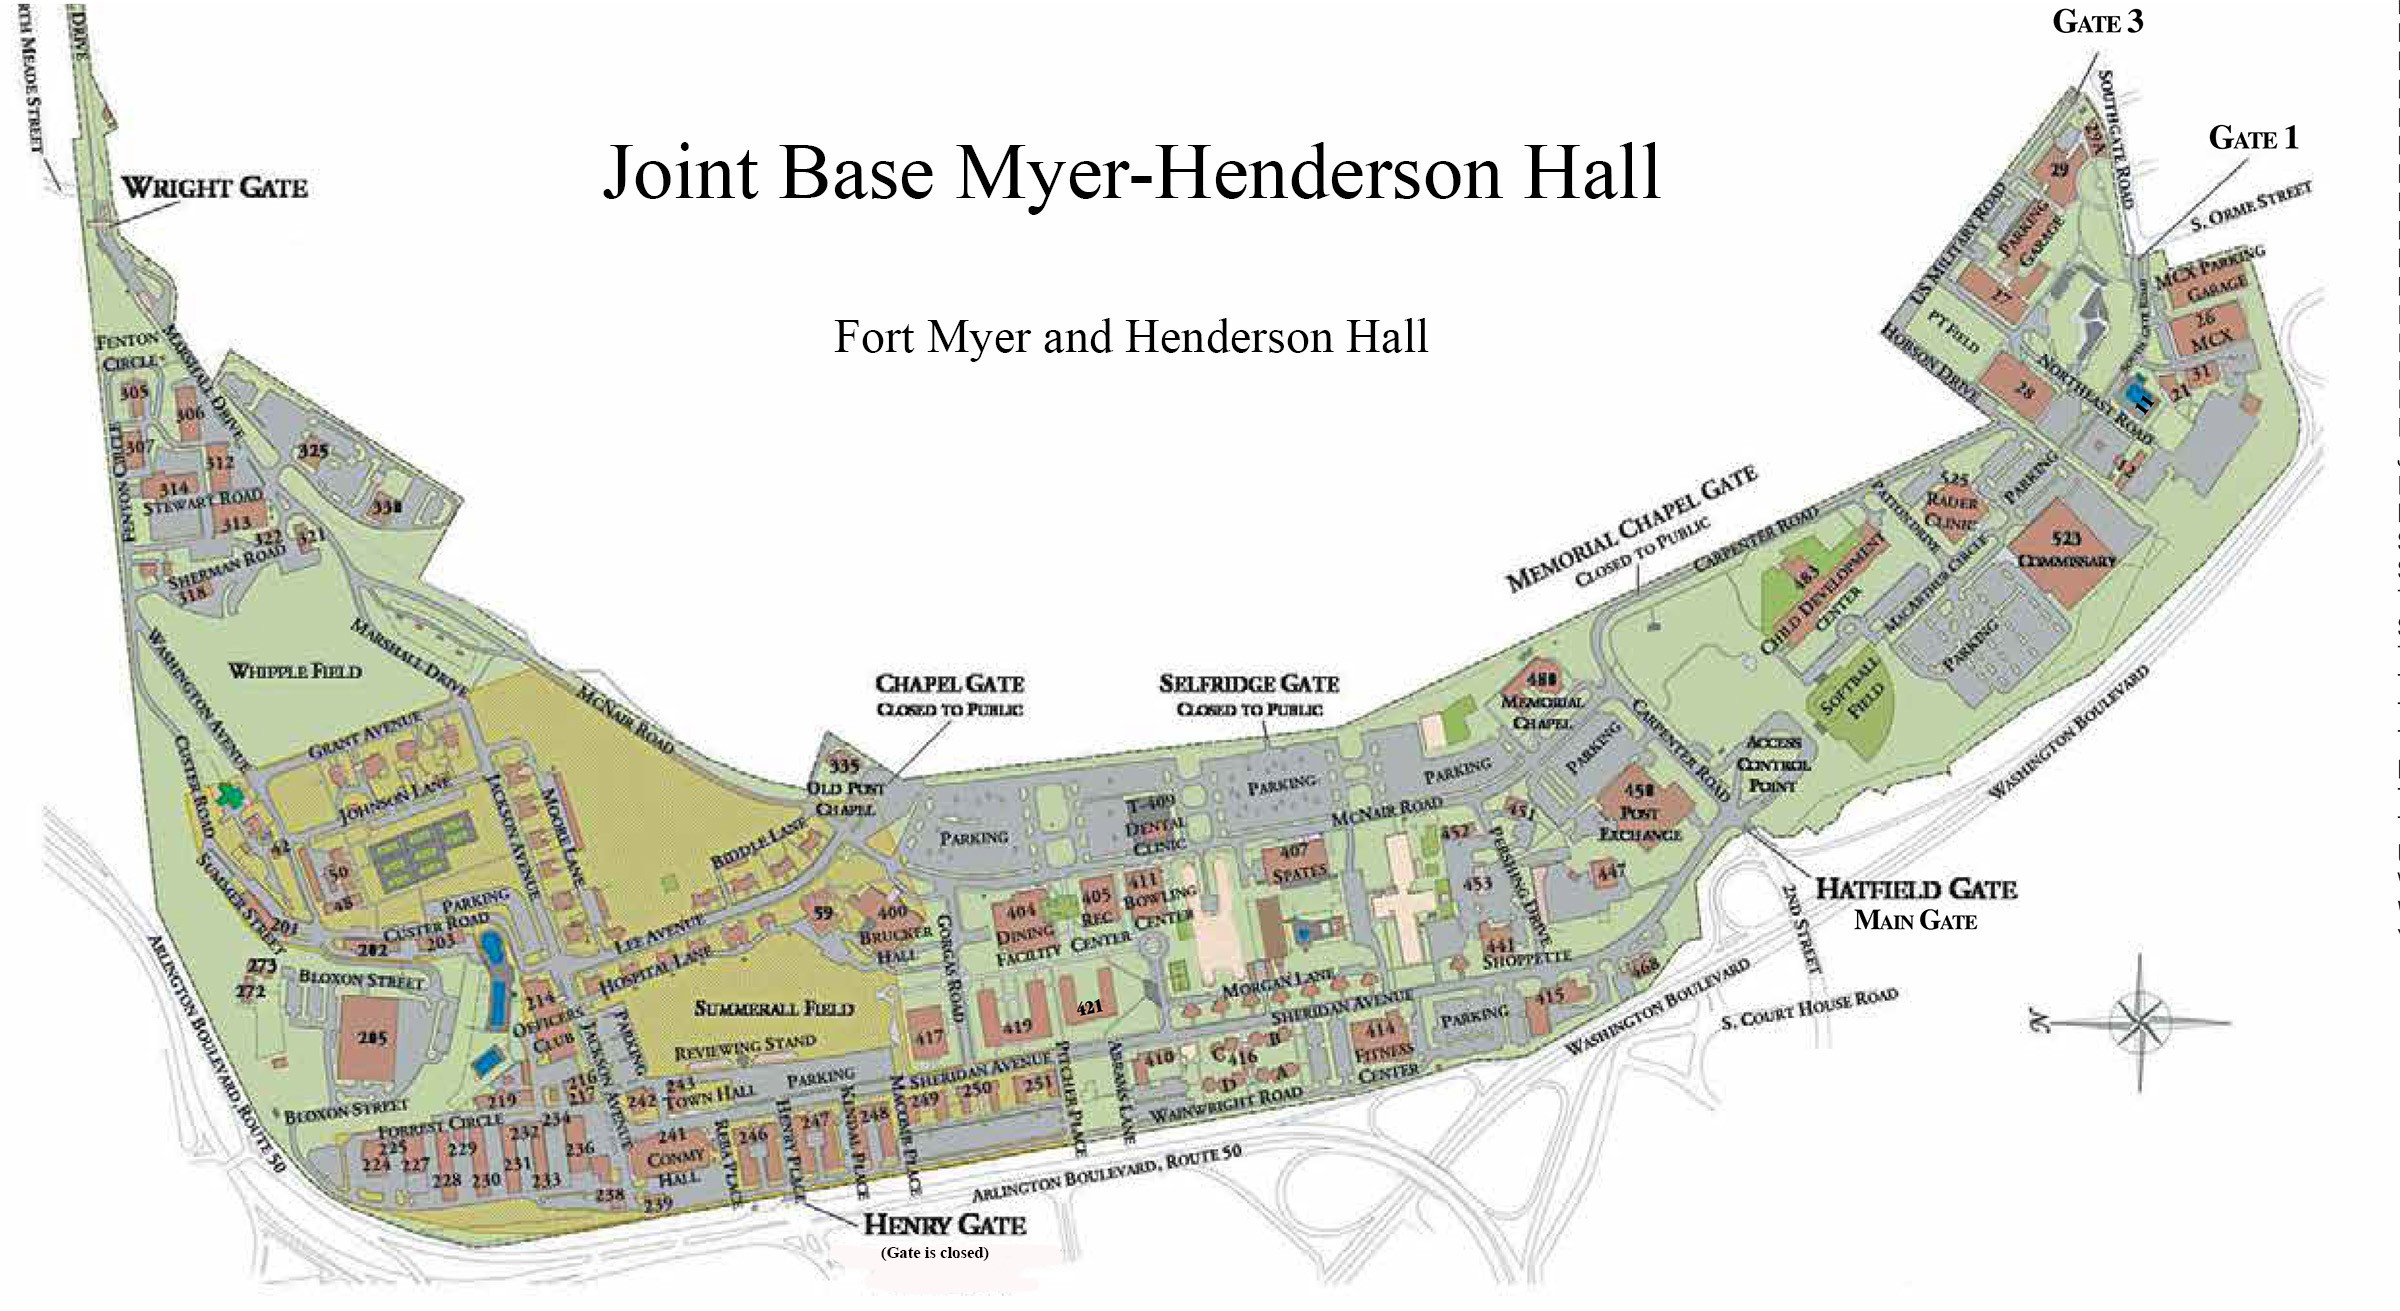 joint base anacostia bolling map with Jbm Hh Gates Access  Fort Myer  Henderson Hall  Virginia  And Fort Mcnair  Washington  D C on Hunter AAF in addition Stafford Virginia Volunteer Fire Department Honor Guard Member Stands Attention moreover 7164081951 further Official Portrait Lt Col Michael W Husfelt United States Air Force besides Related search.